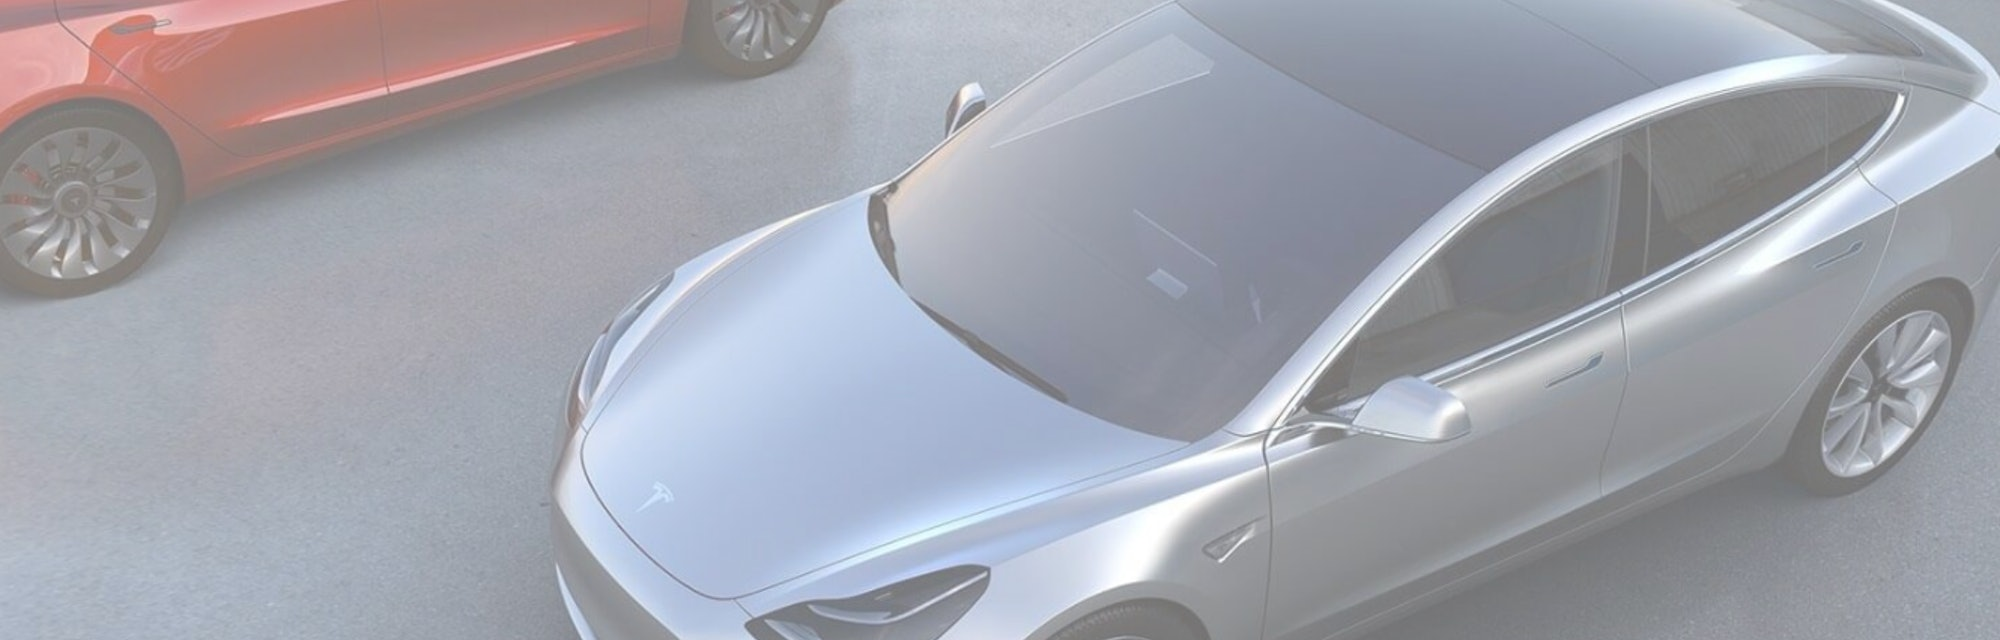 Tesla Model 3 Premium Upgrades Package: Here's What You Get